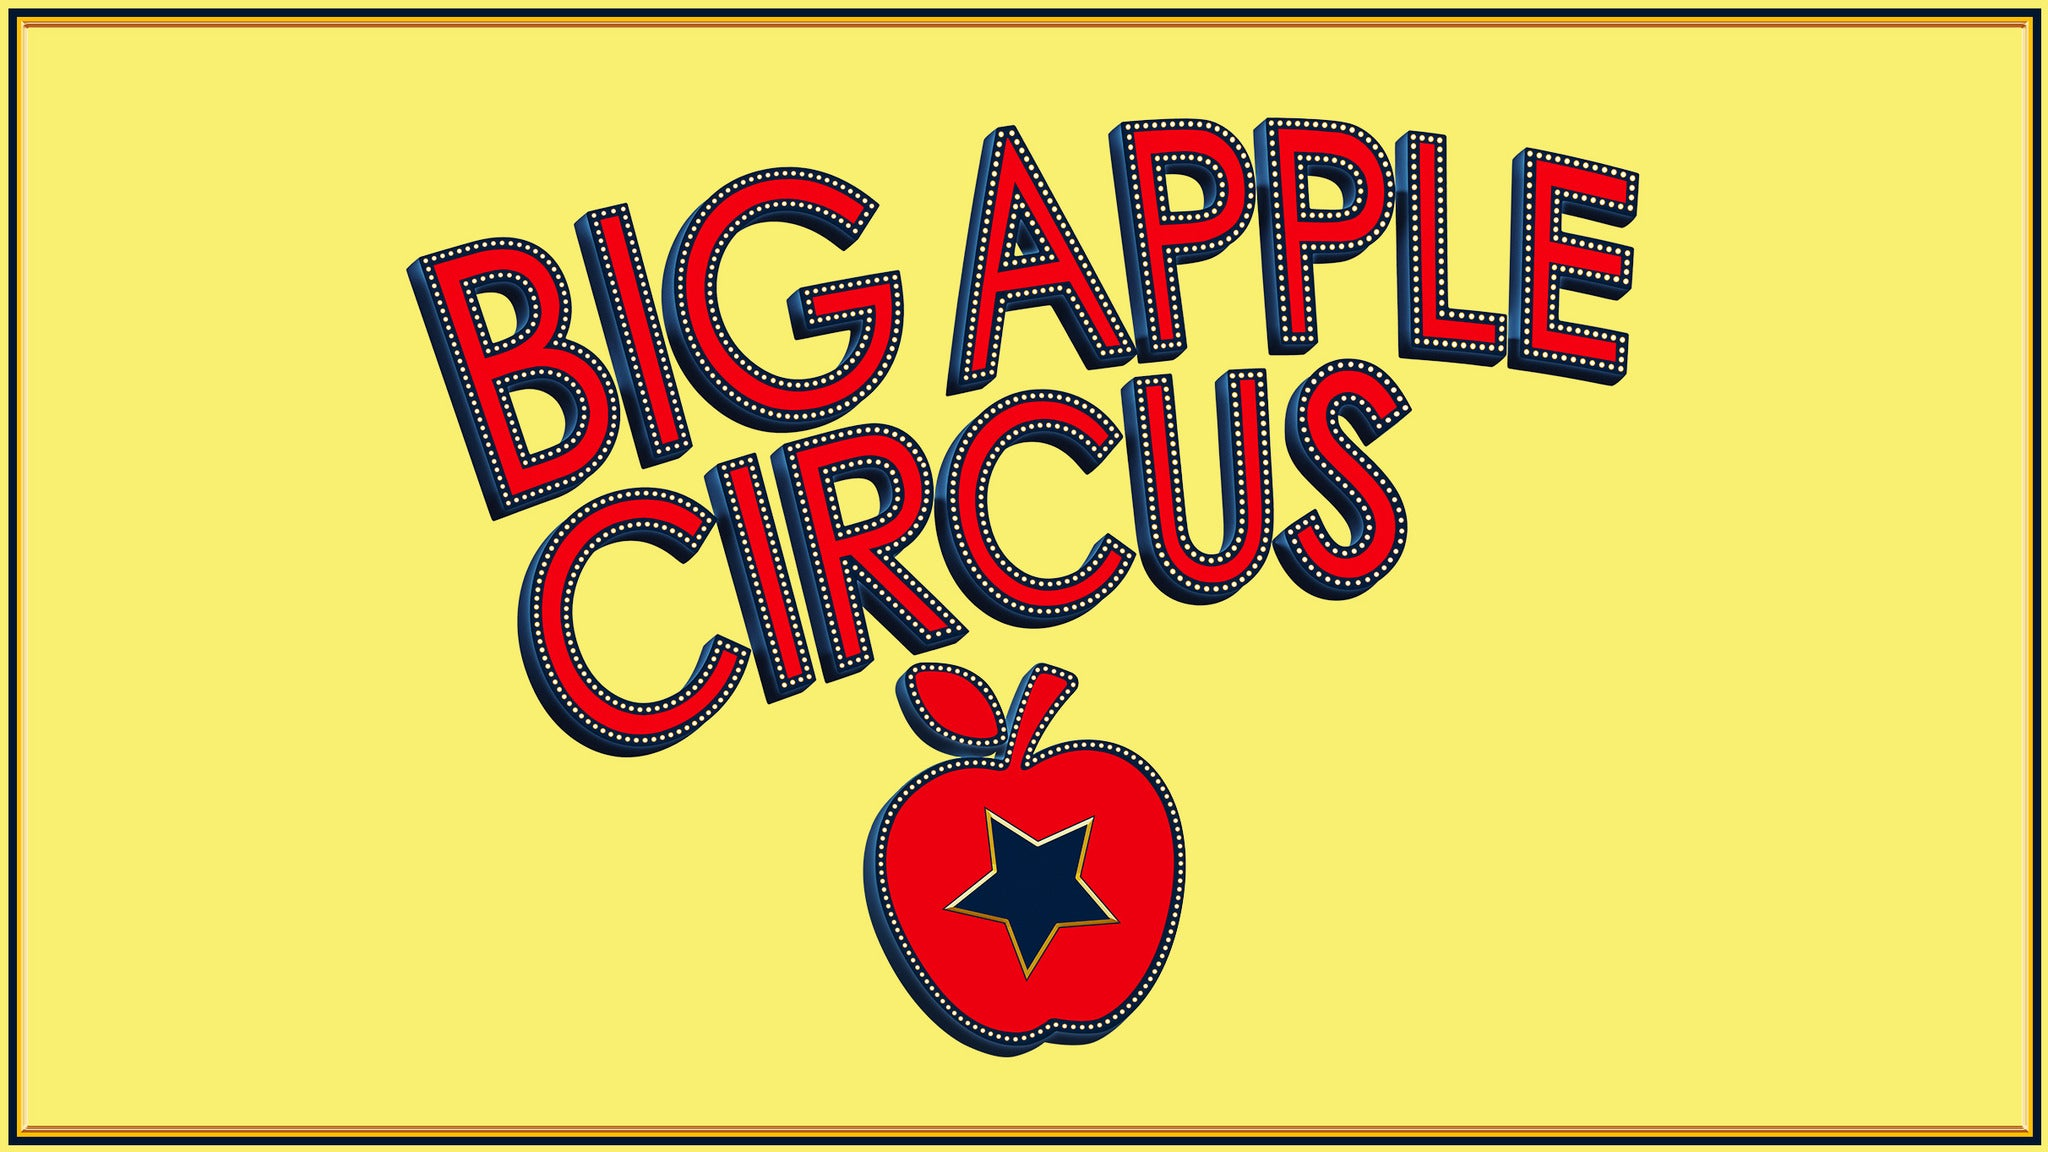 Big Apple Circus - Philadelphia - 75 Minute Performance